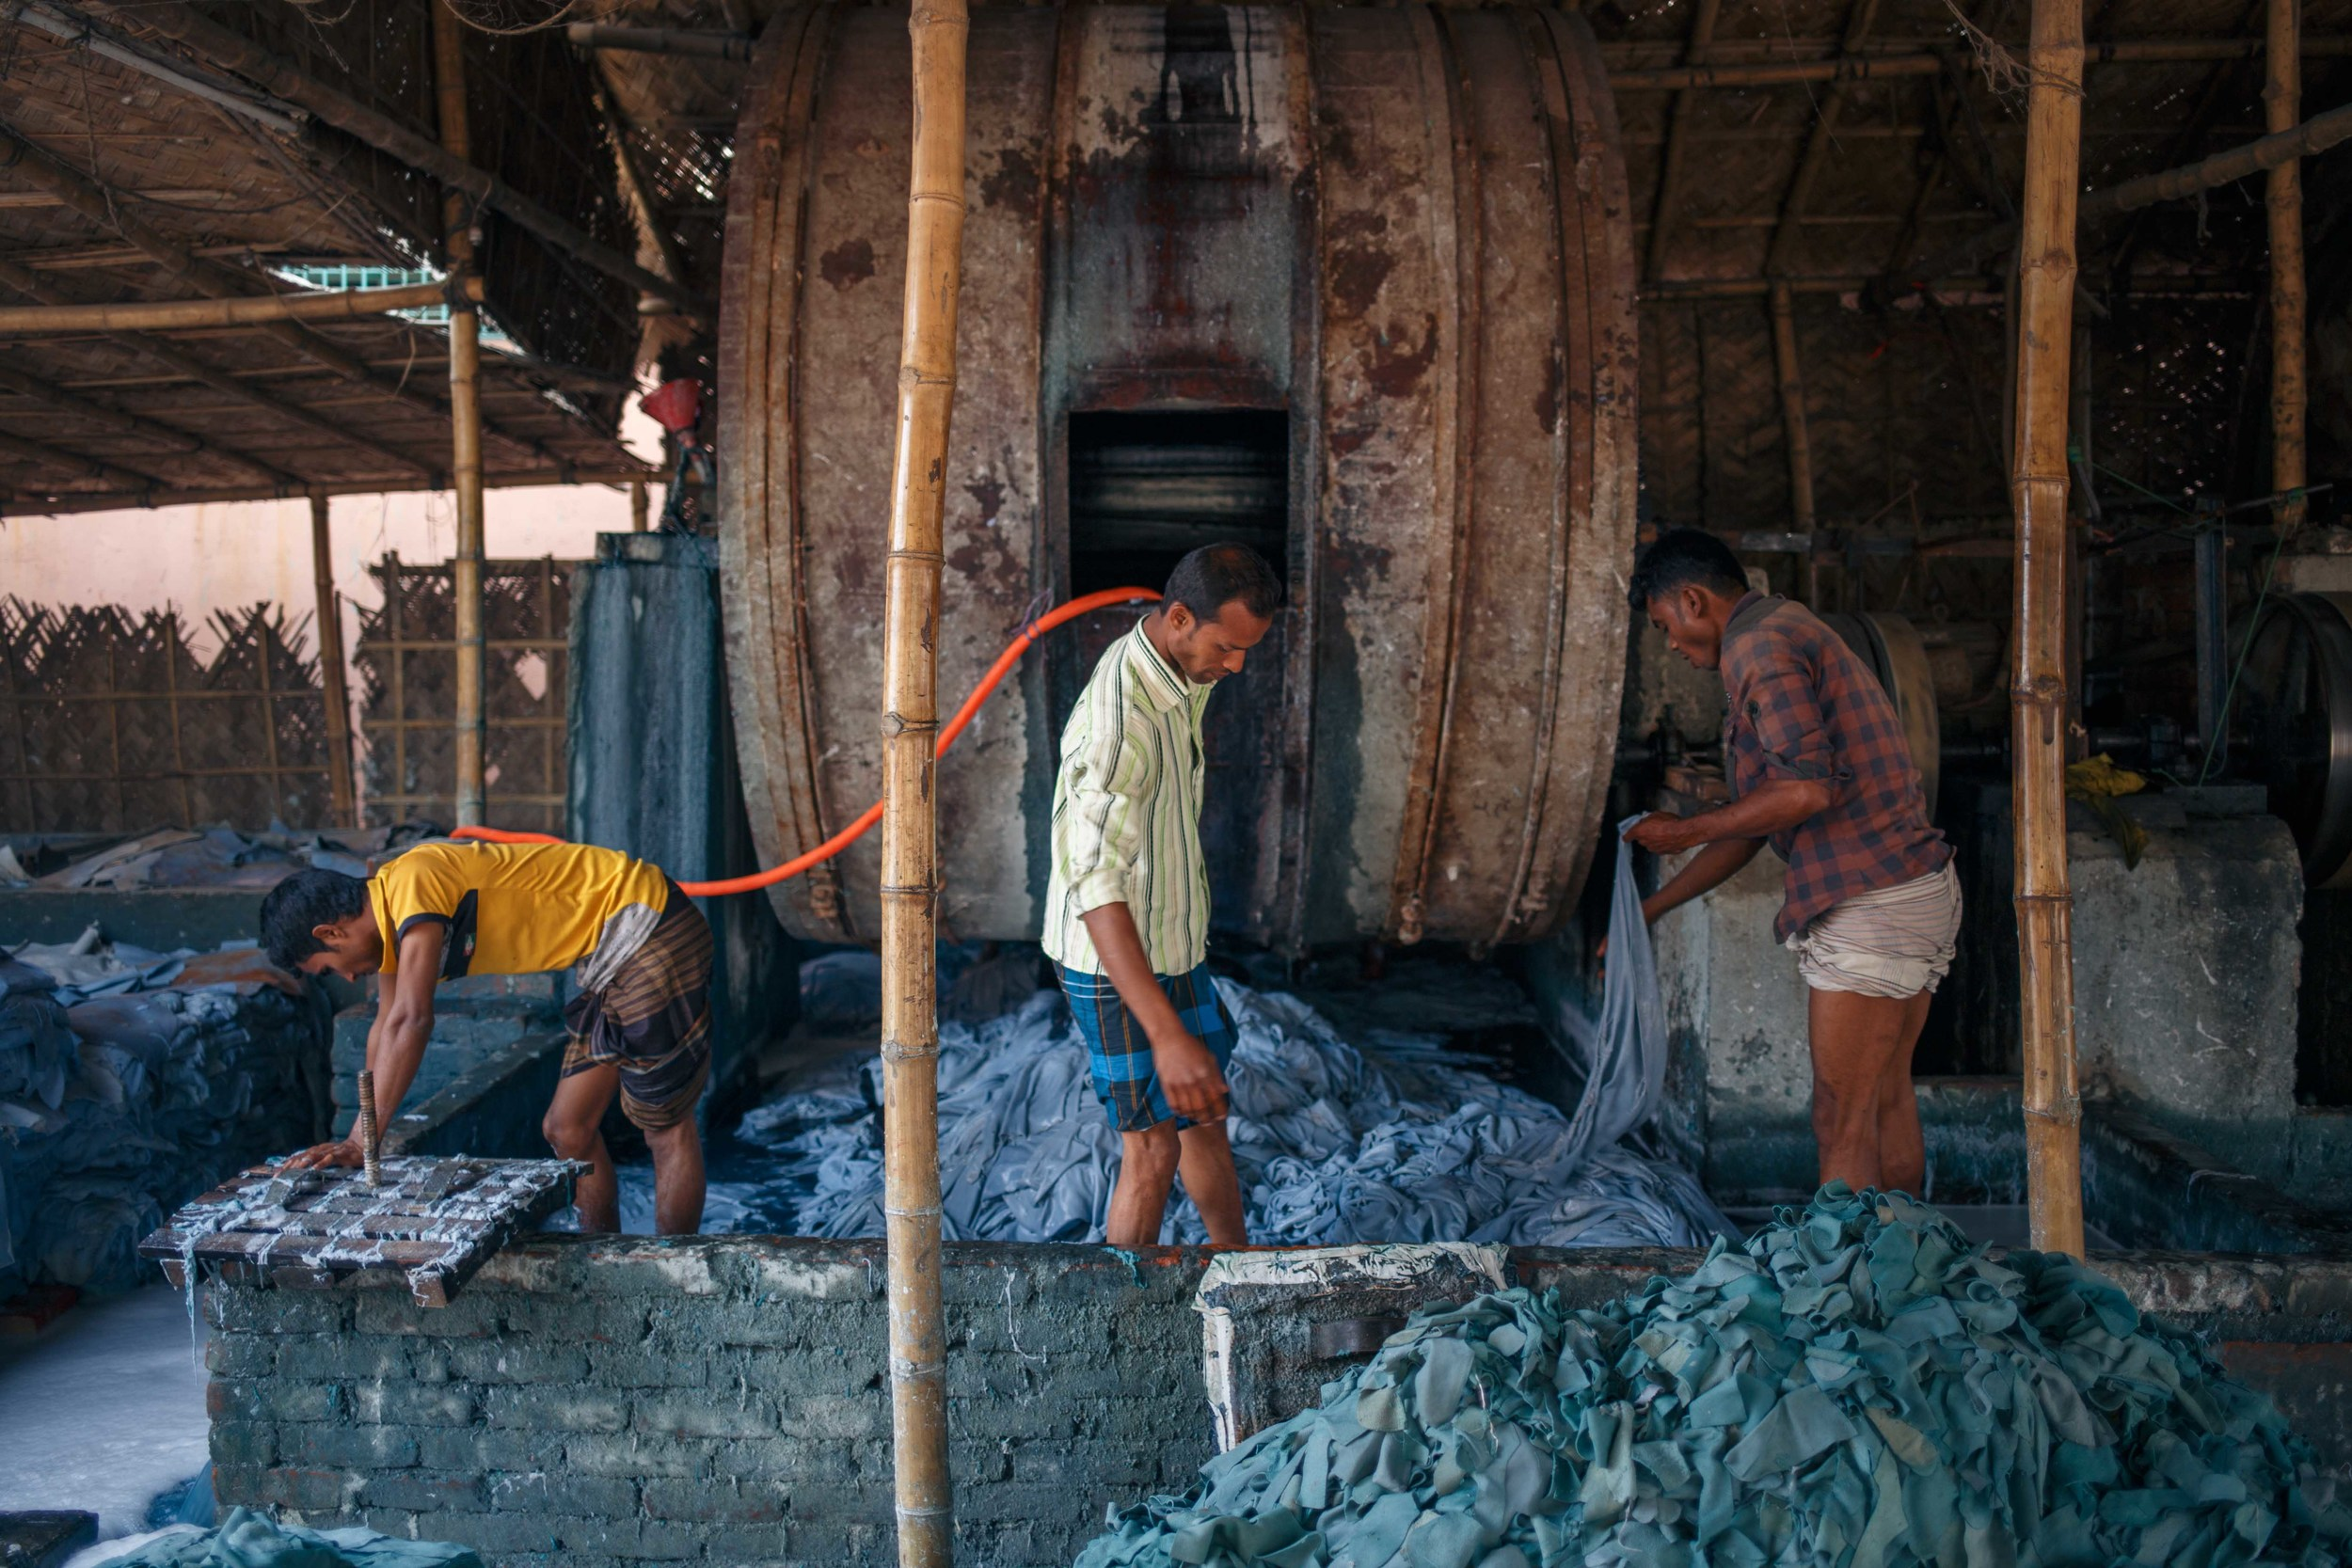 Workers inside a pit for the treatment of leather hides.